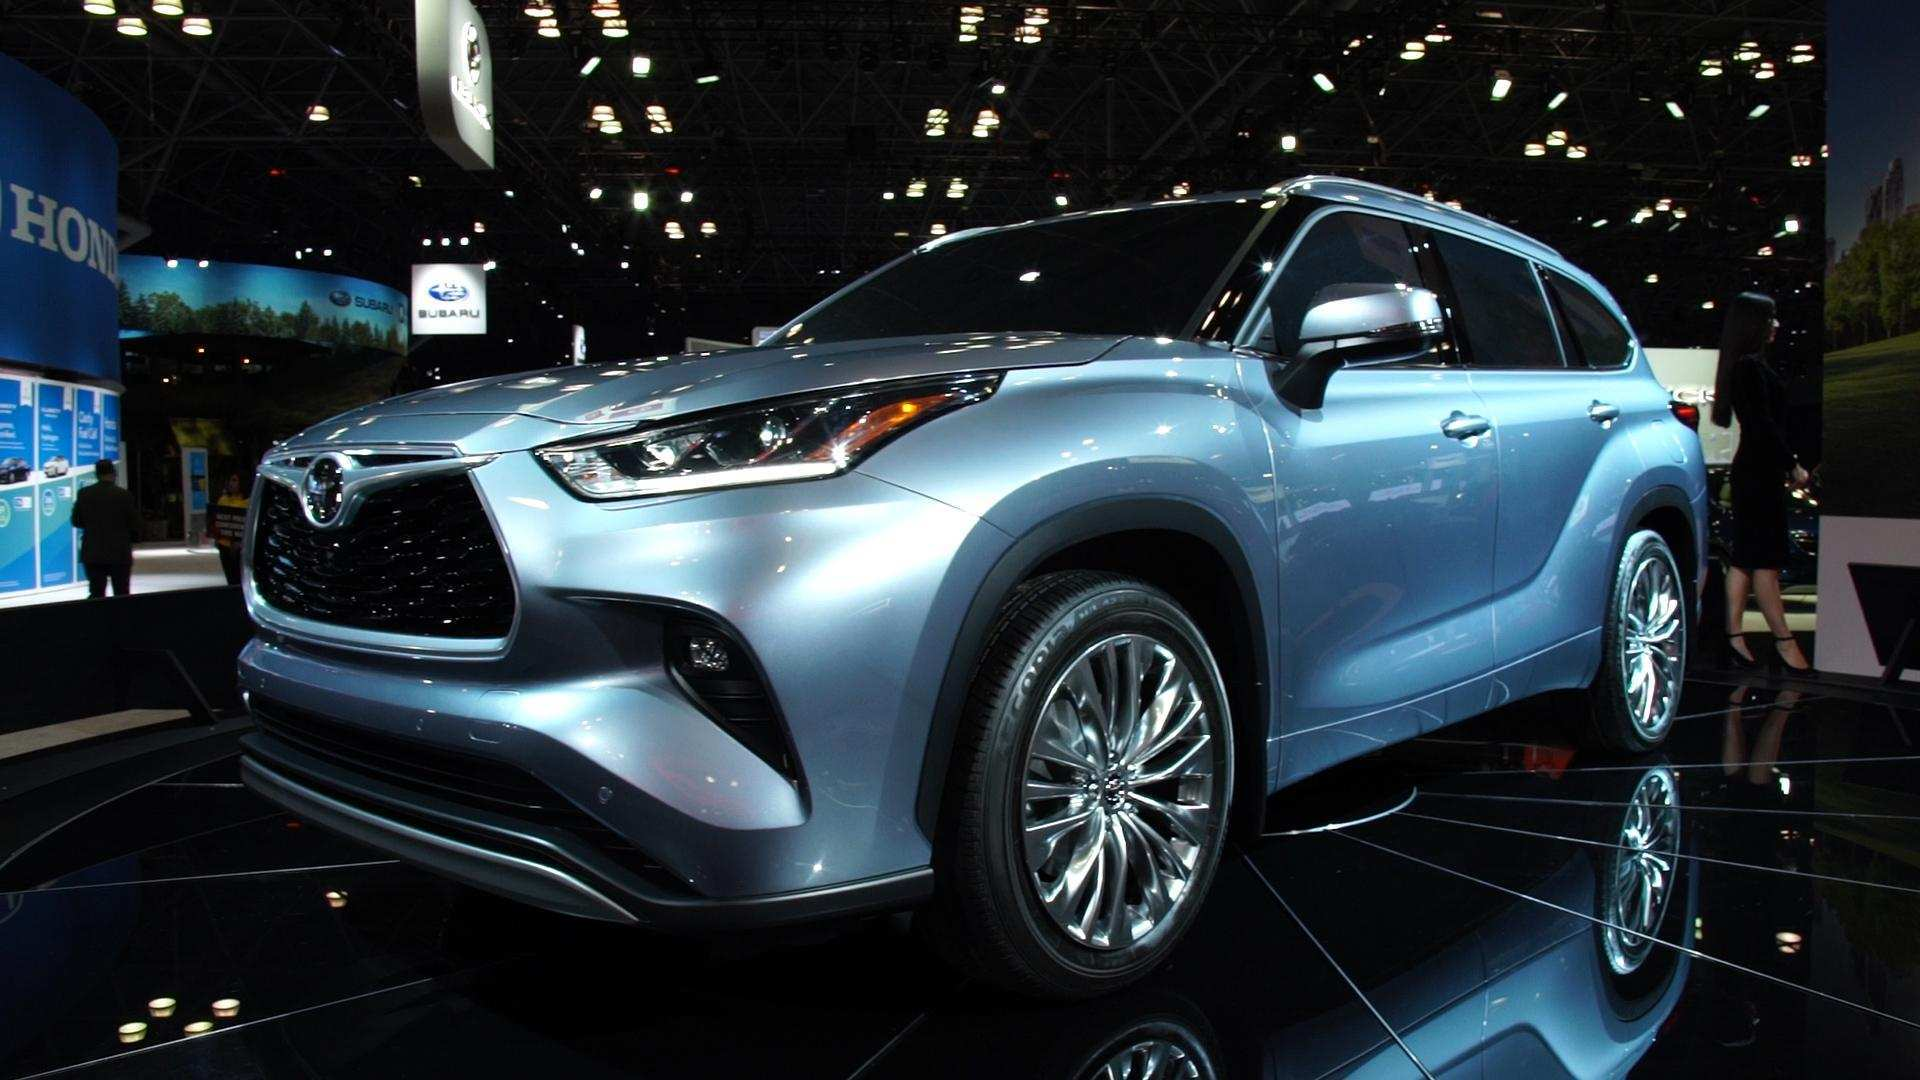 43 All New Toyota Highlander 2020 Engine